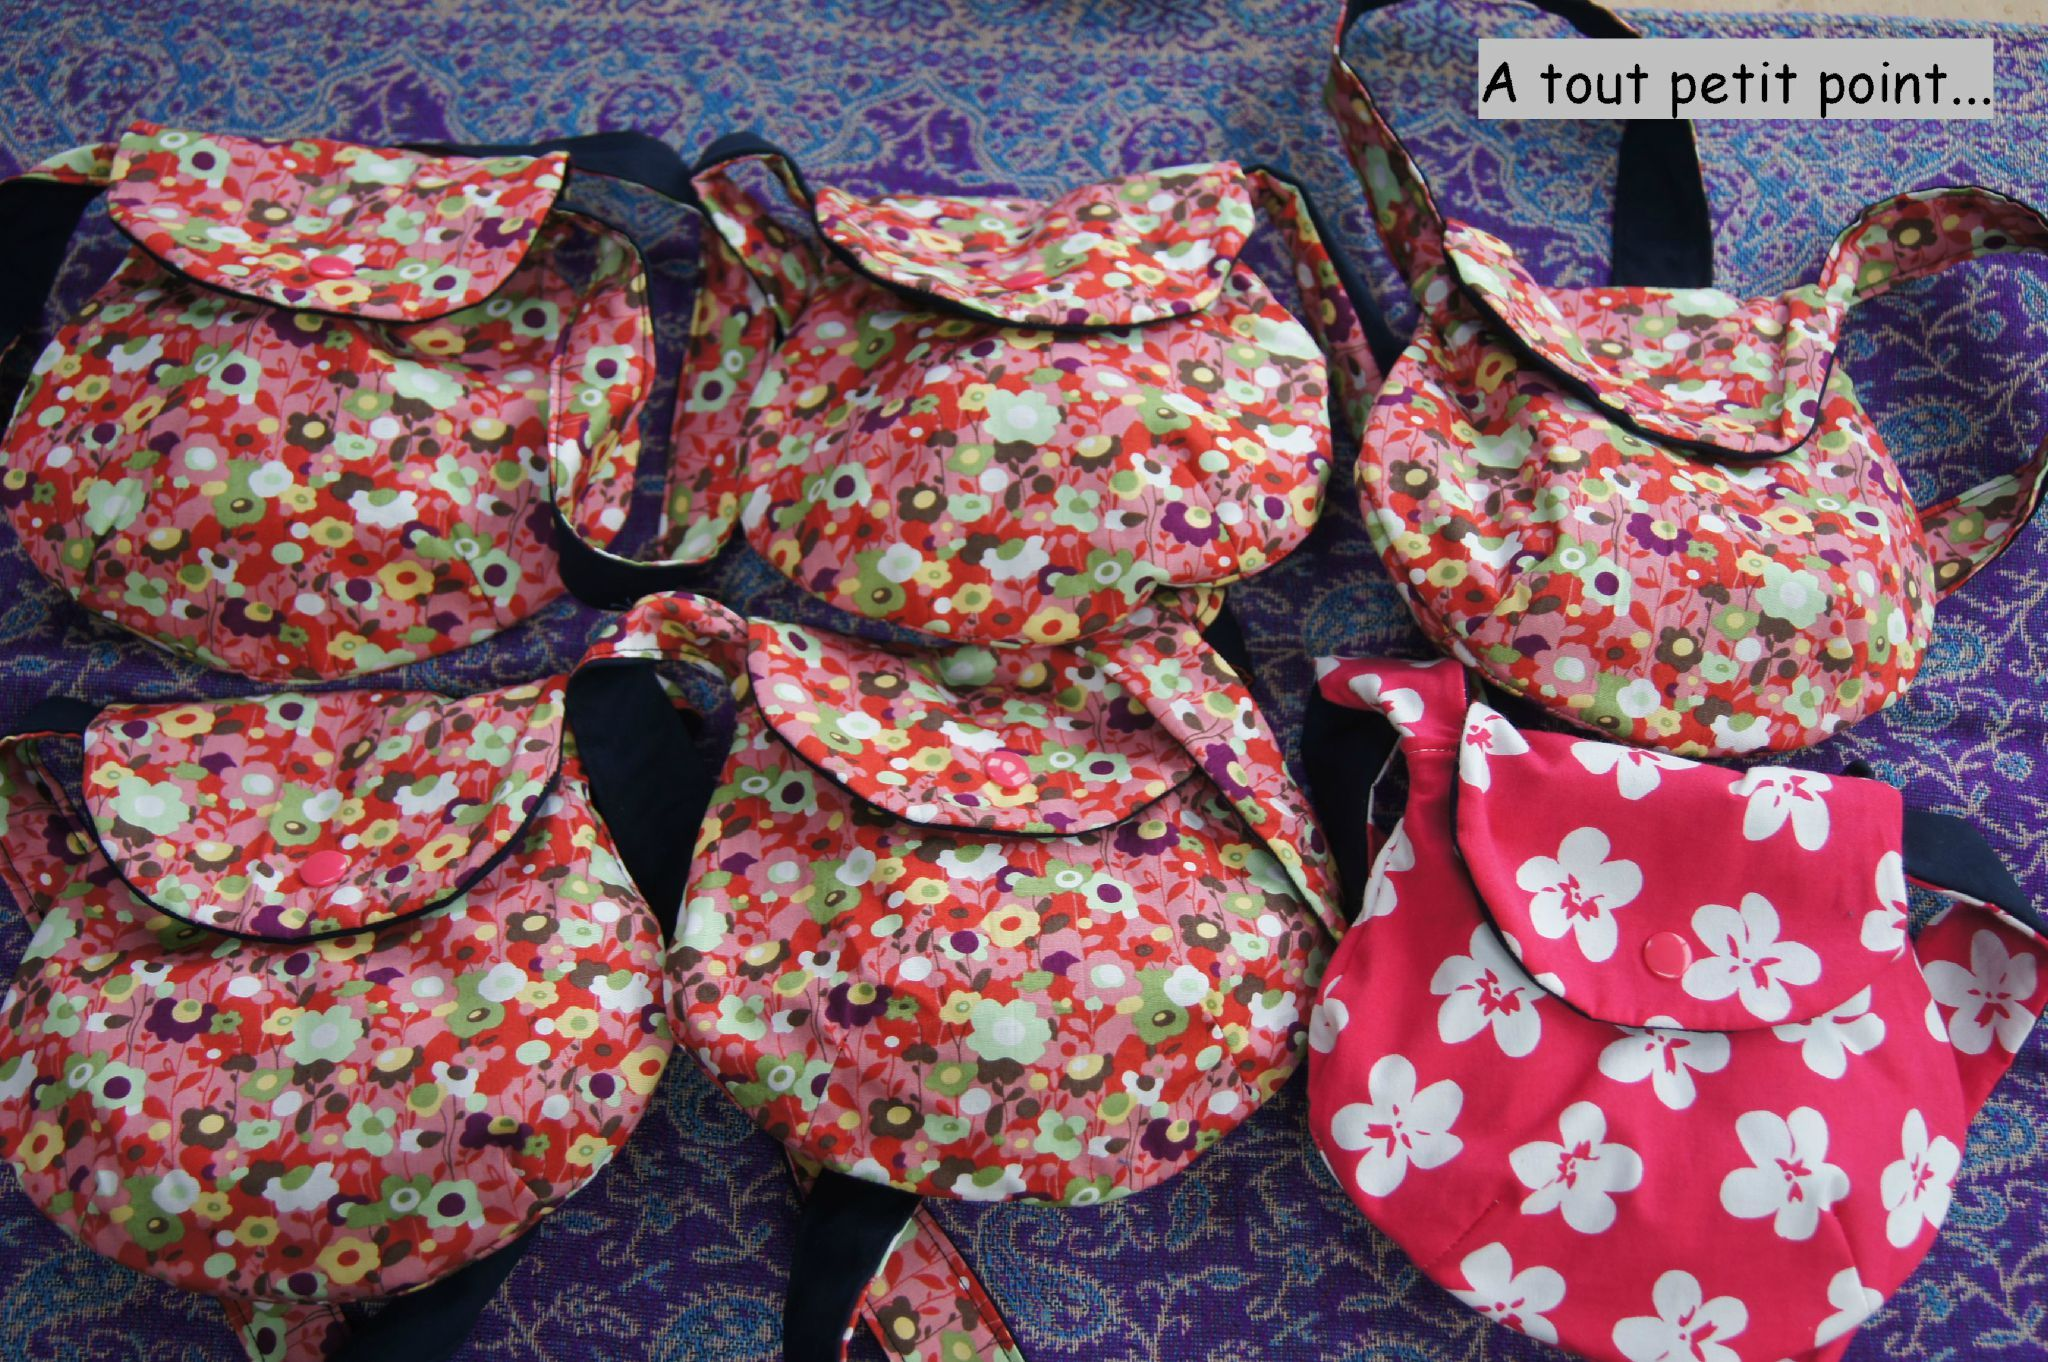 diy ou tuto du sac pour petite fille a tout petit point tuto couture pinterest tout. Black Bedroom Furniture Sets. Home Design Ideas